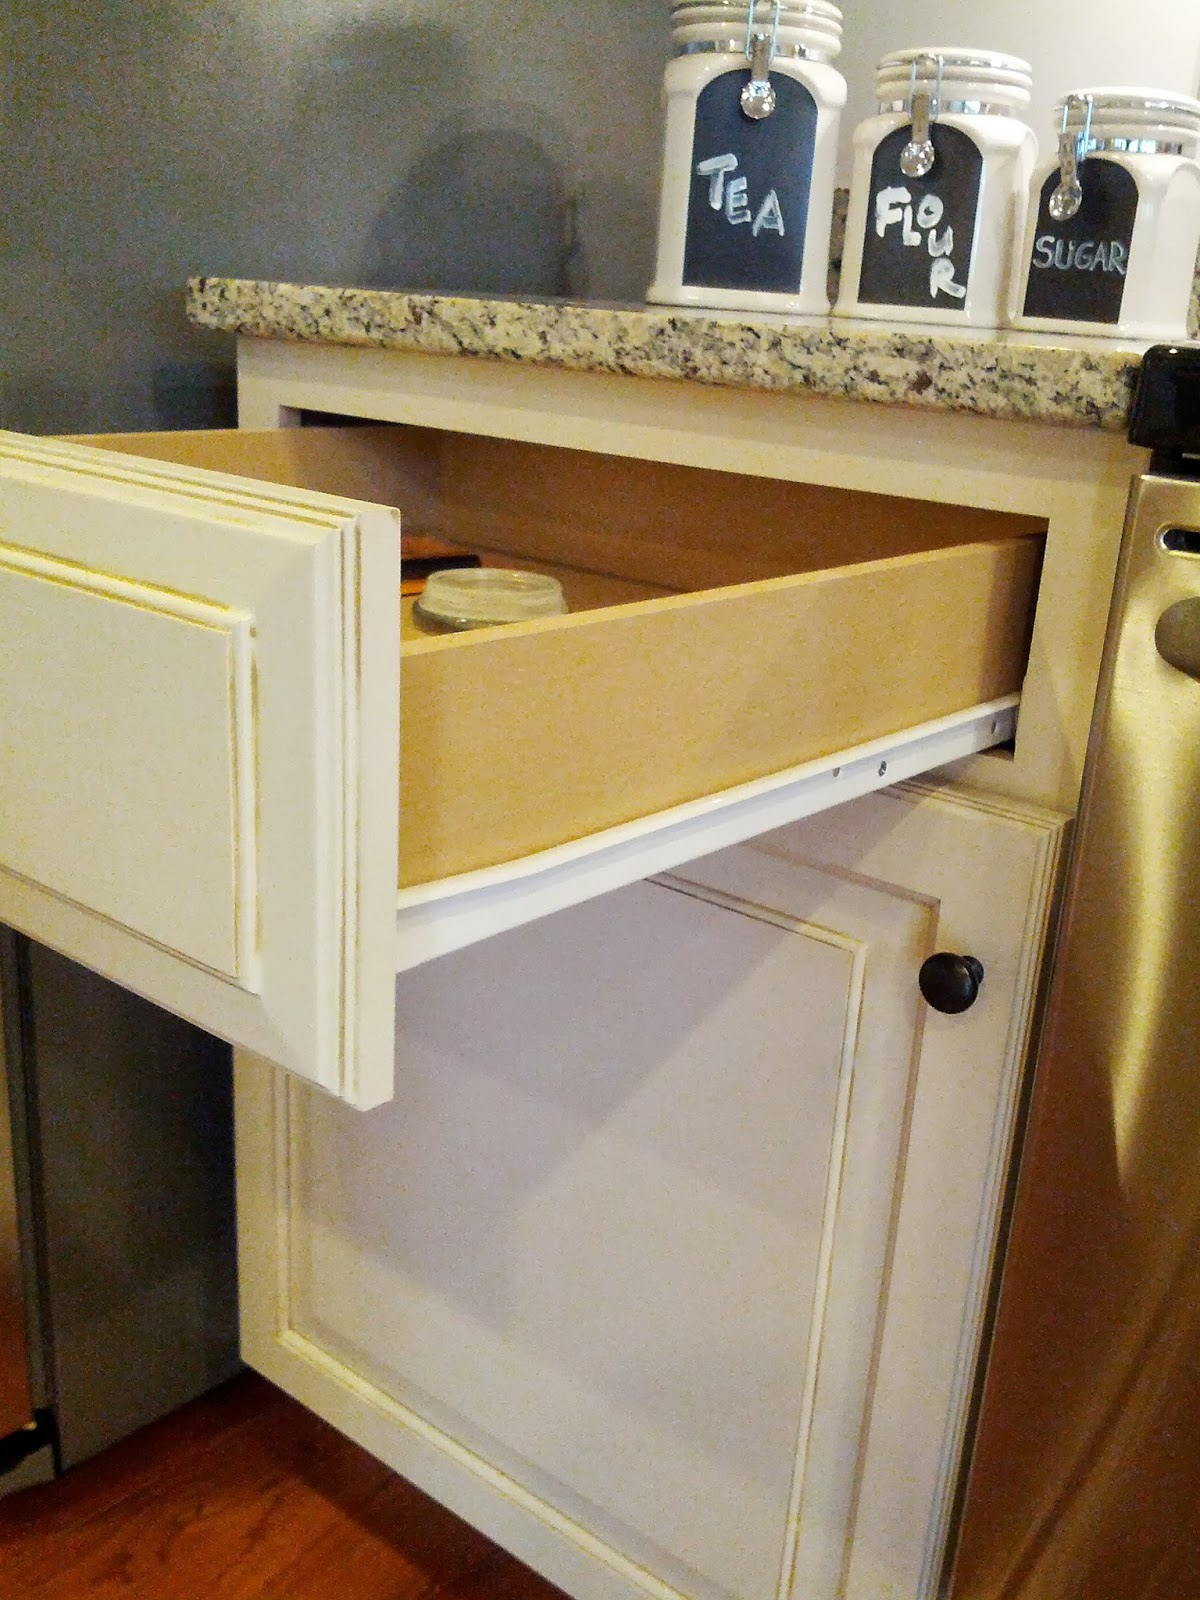 The Latest On Ryan And Timberlake Cabinets